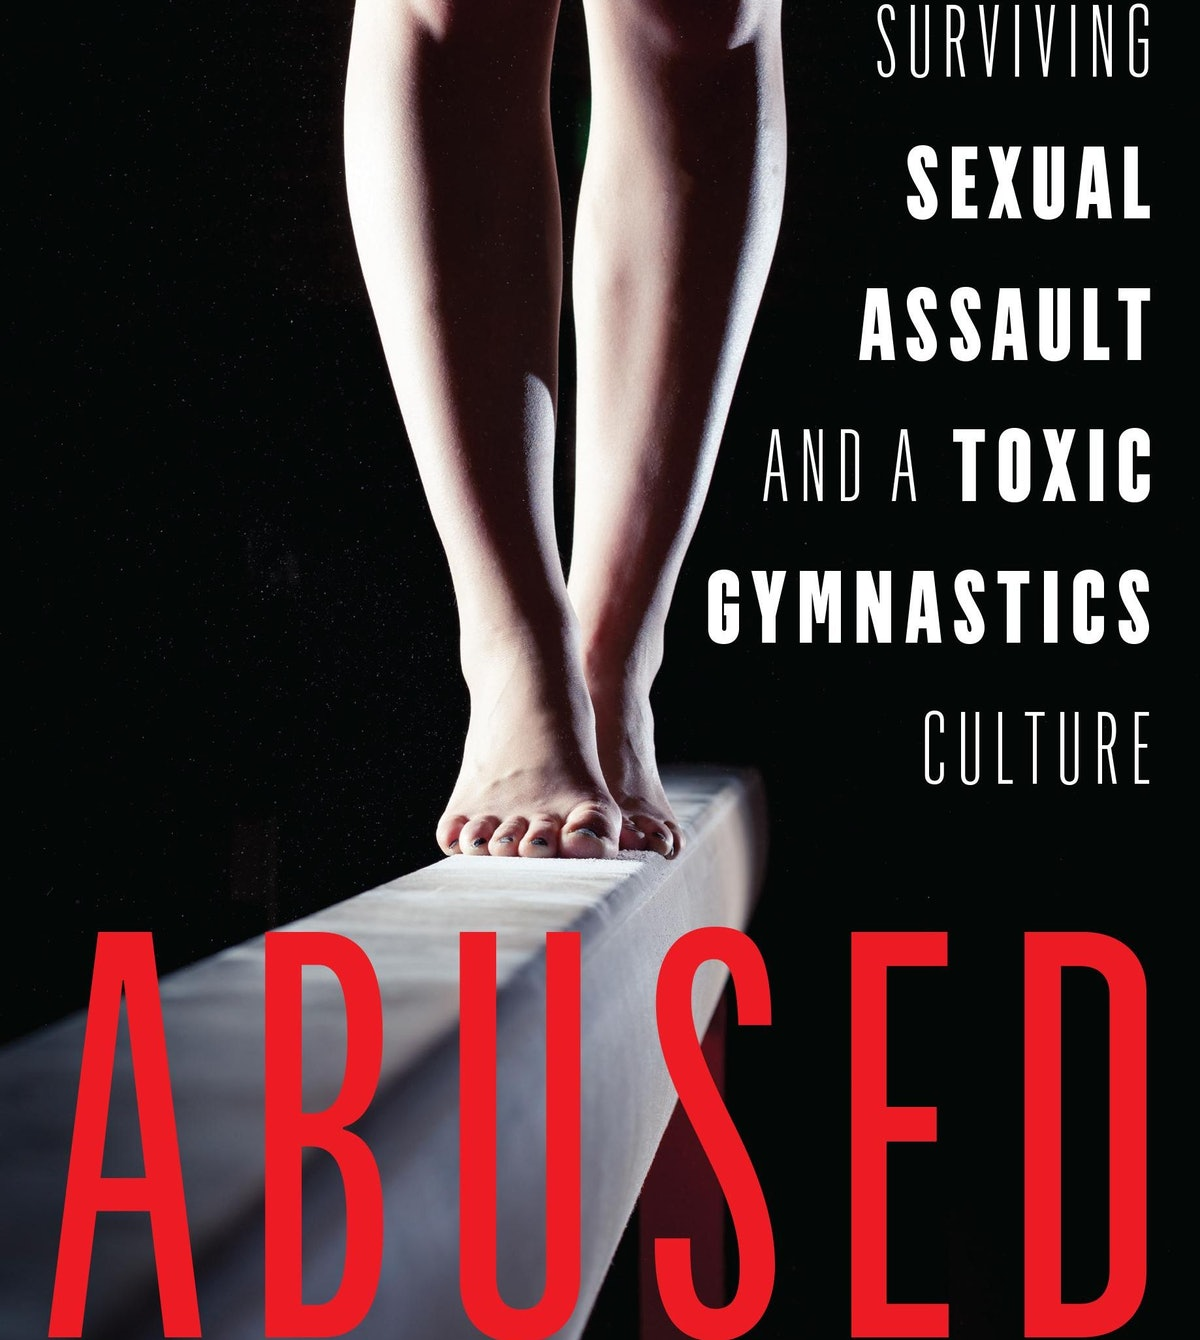 Abused: Surviving Sexual Assault and a Toxic Gymnastics Culture